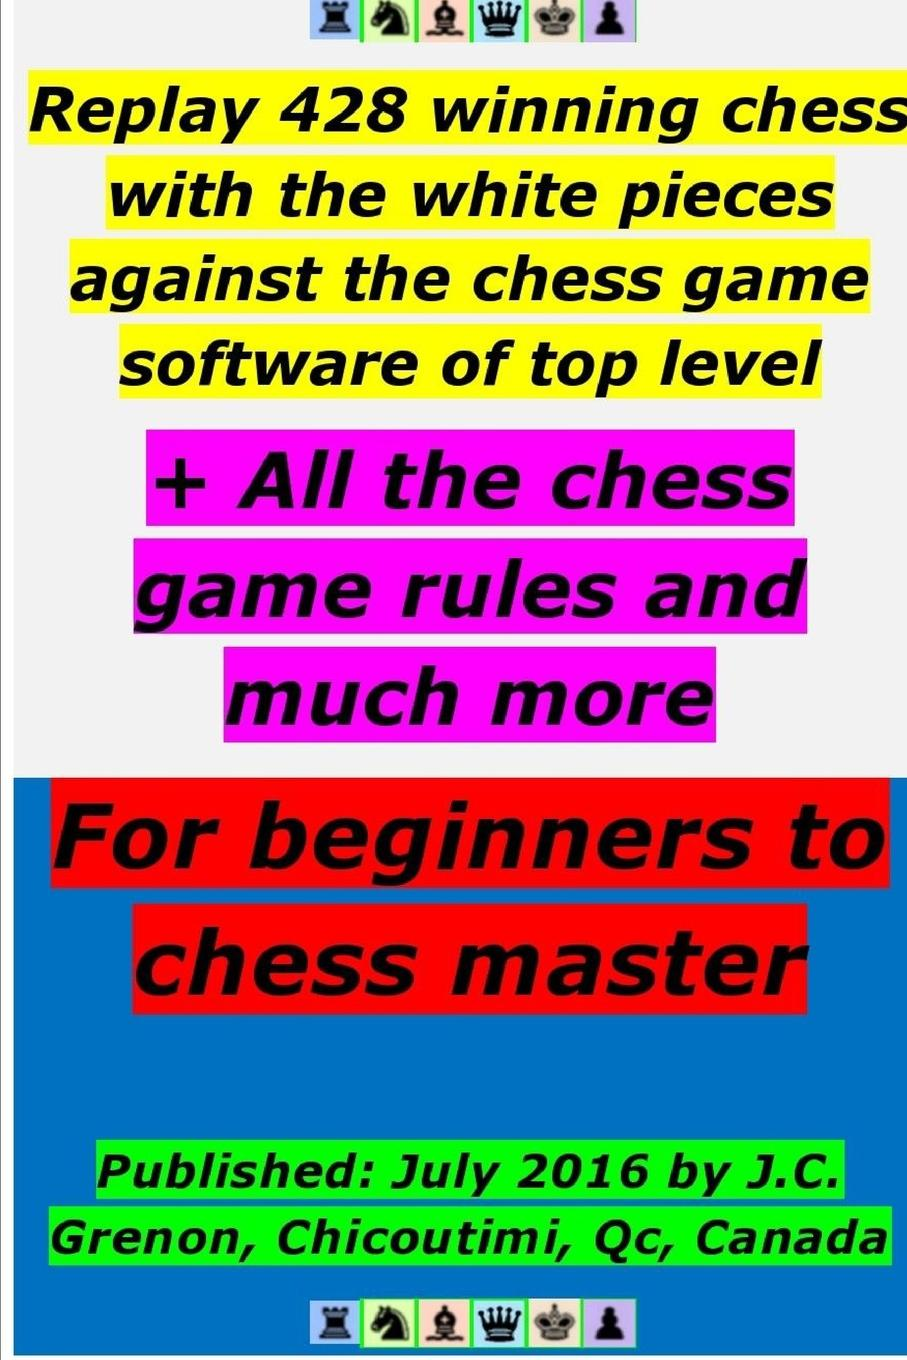 J.C. Grenon Replay 428 winning chess with the white pieces against the high chess software . All the chess rules and much more dangerous game level 3